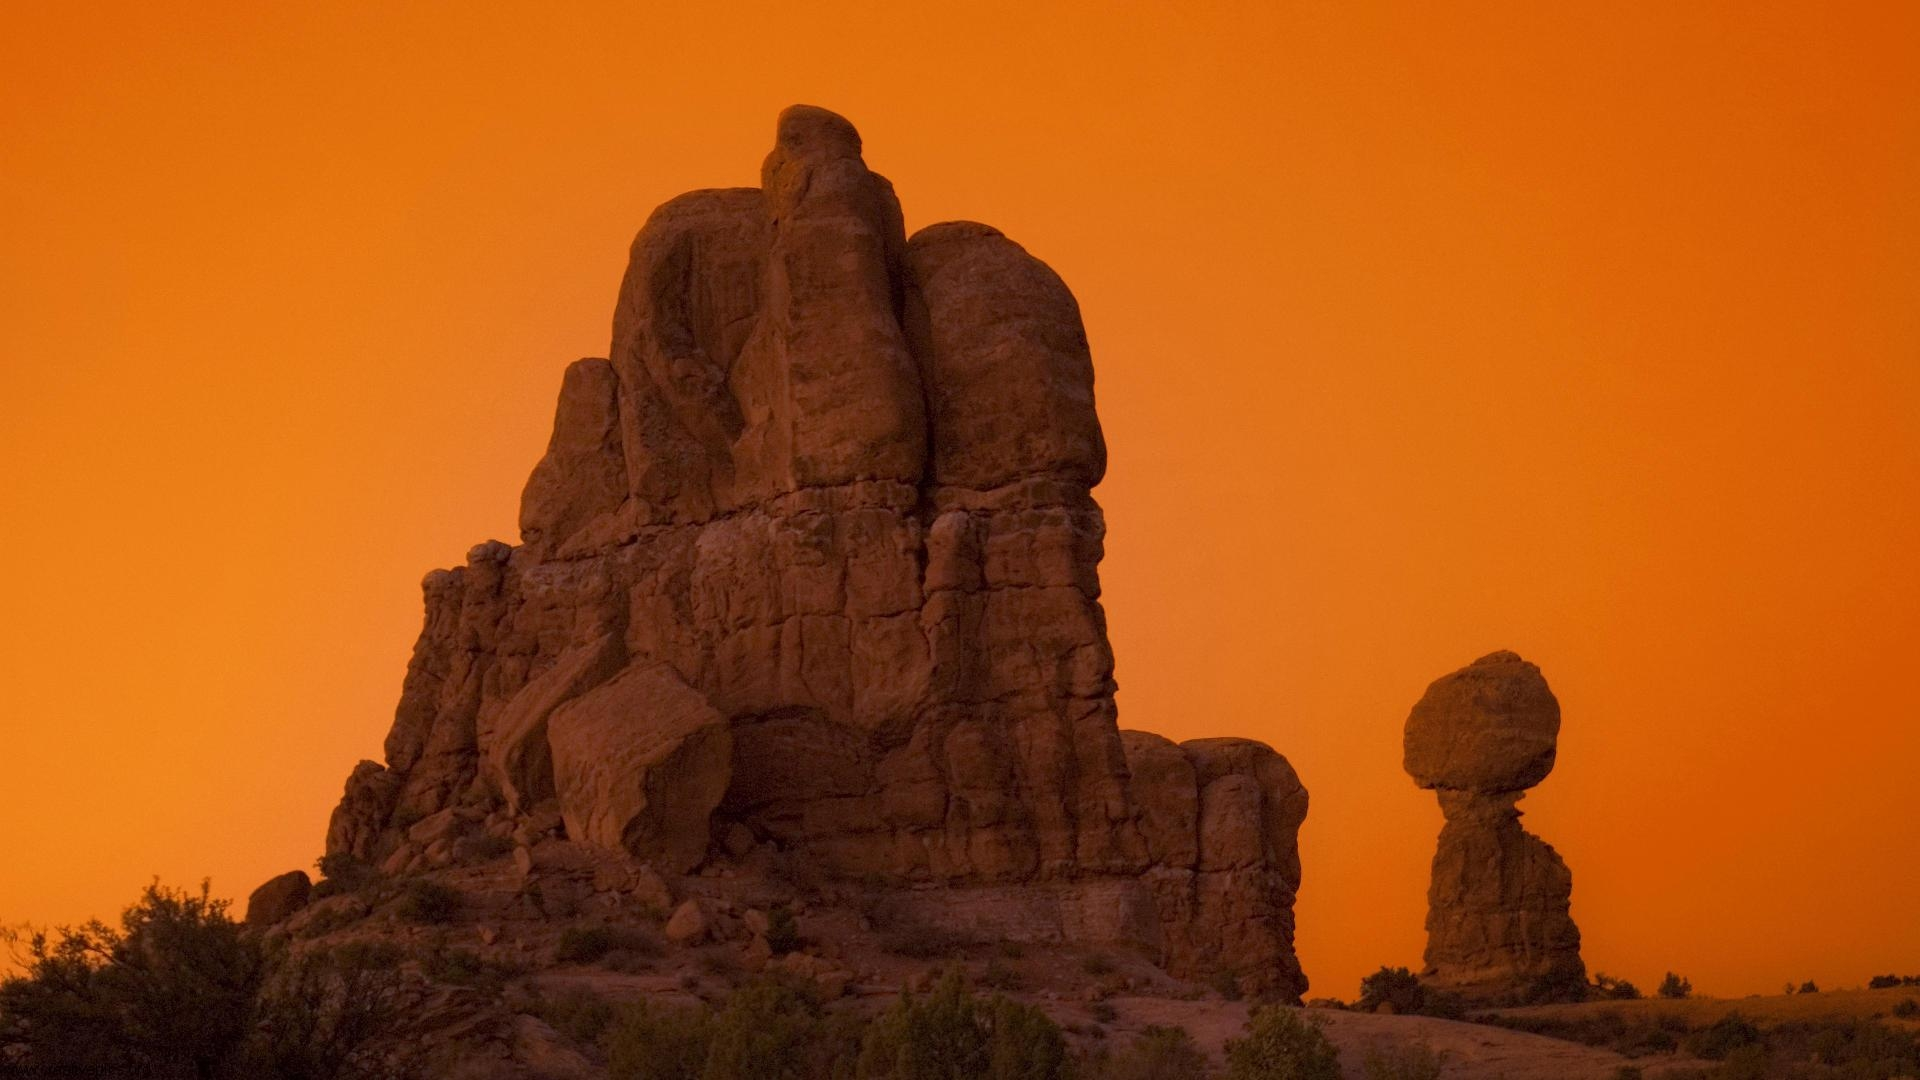 Balanced Rock Arches National Park Utah HD Wallpaper   Creative Pics 1920x1080